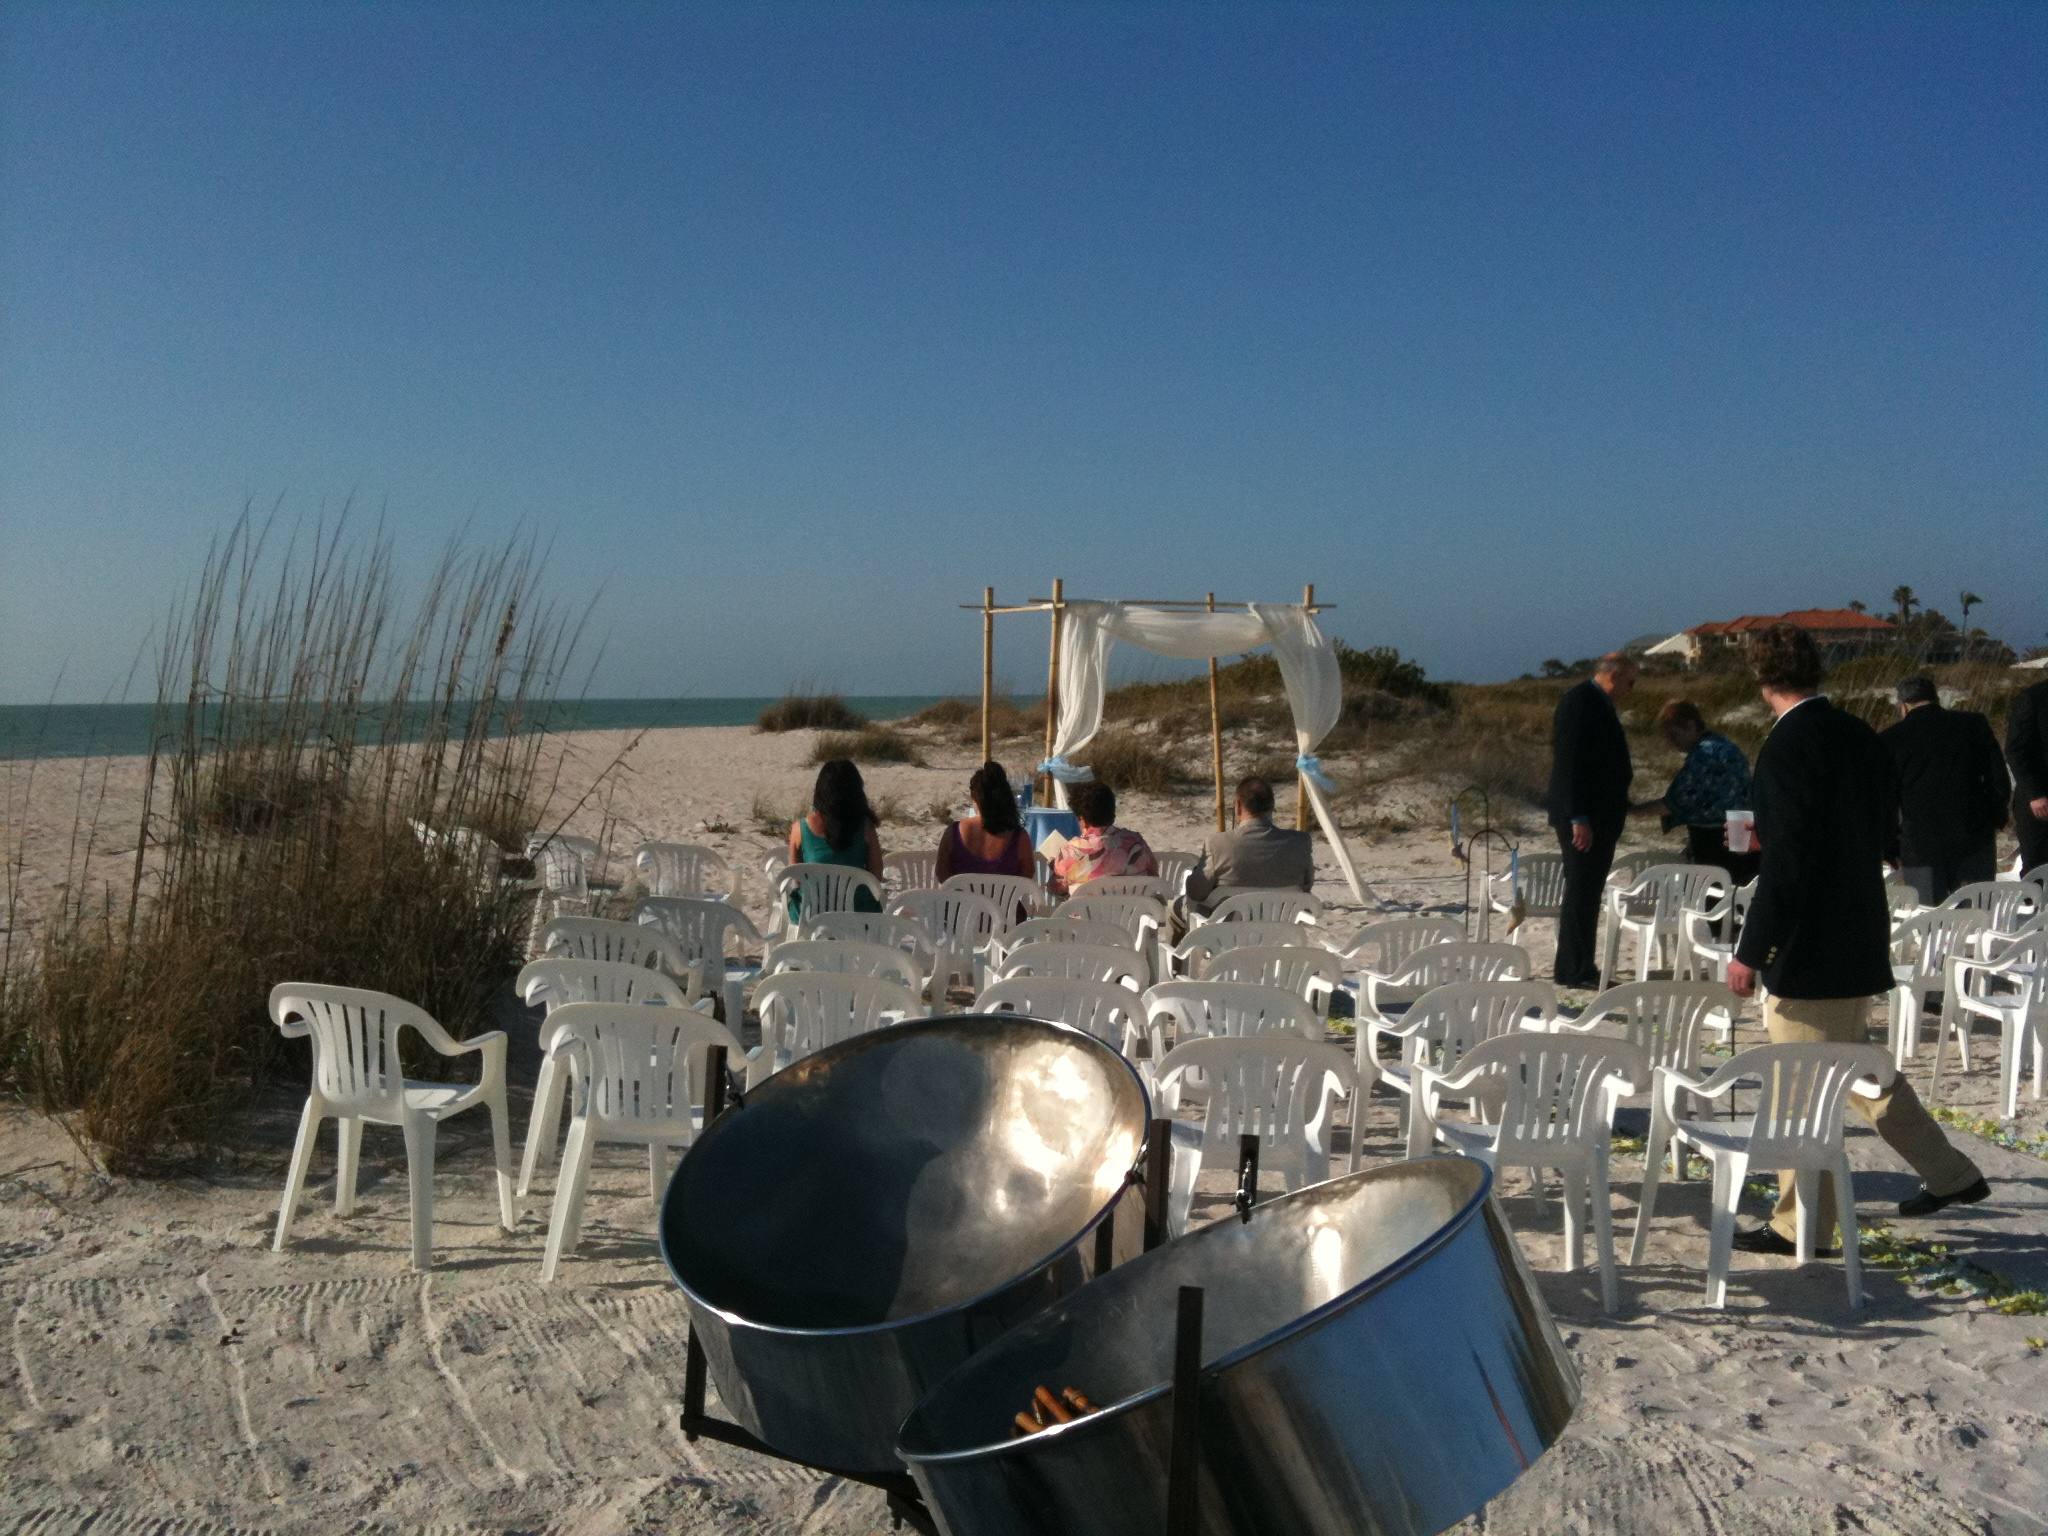 Carlouel Yacht Club Clearwater Beach - Caladesi Steel Band